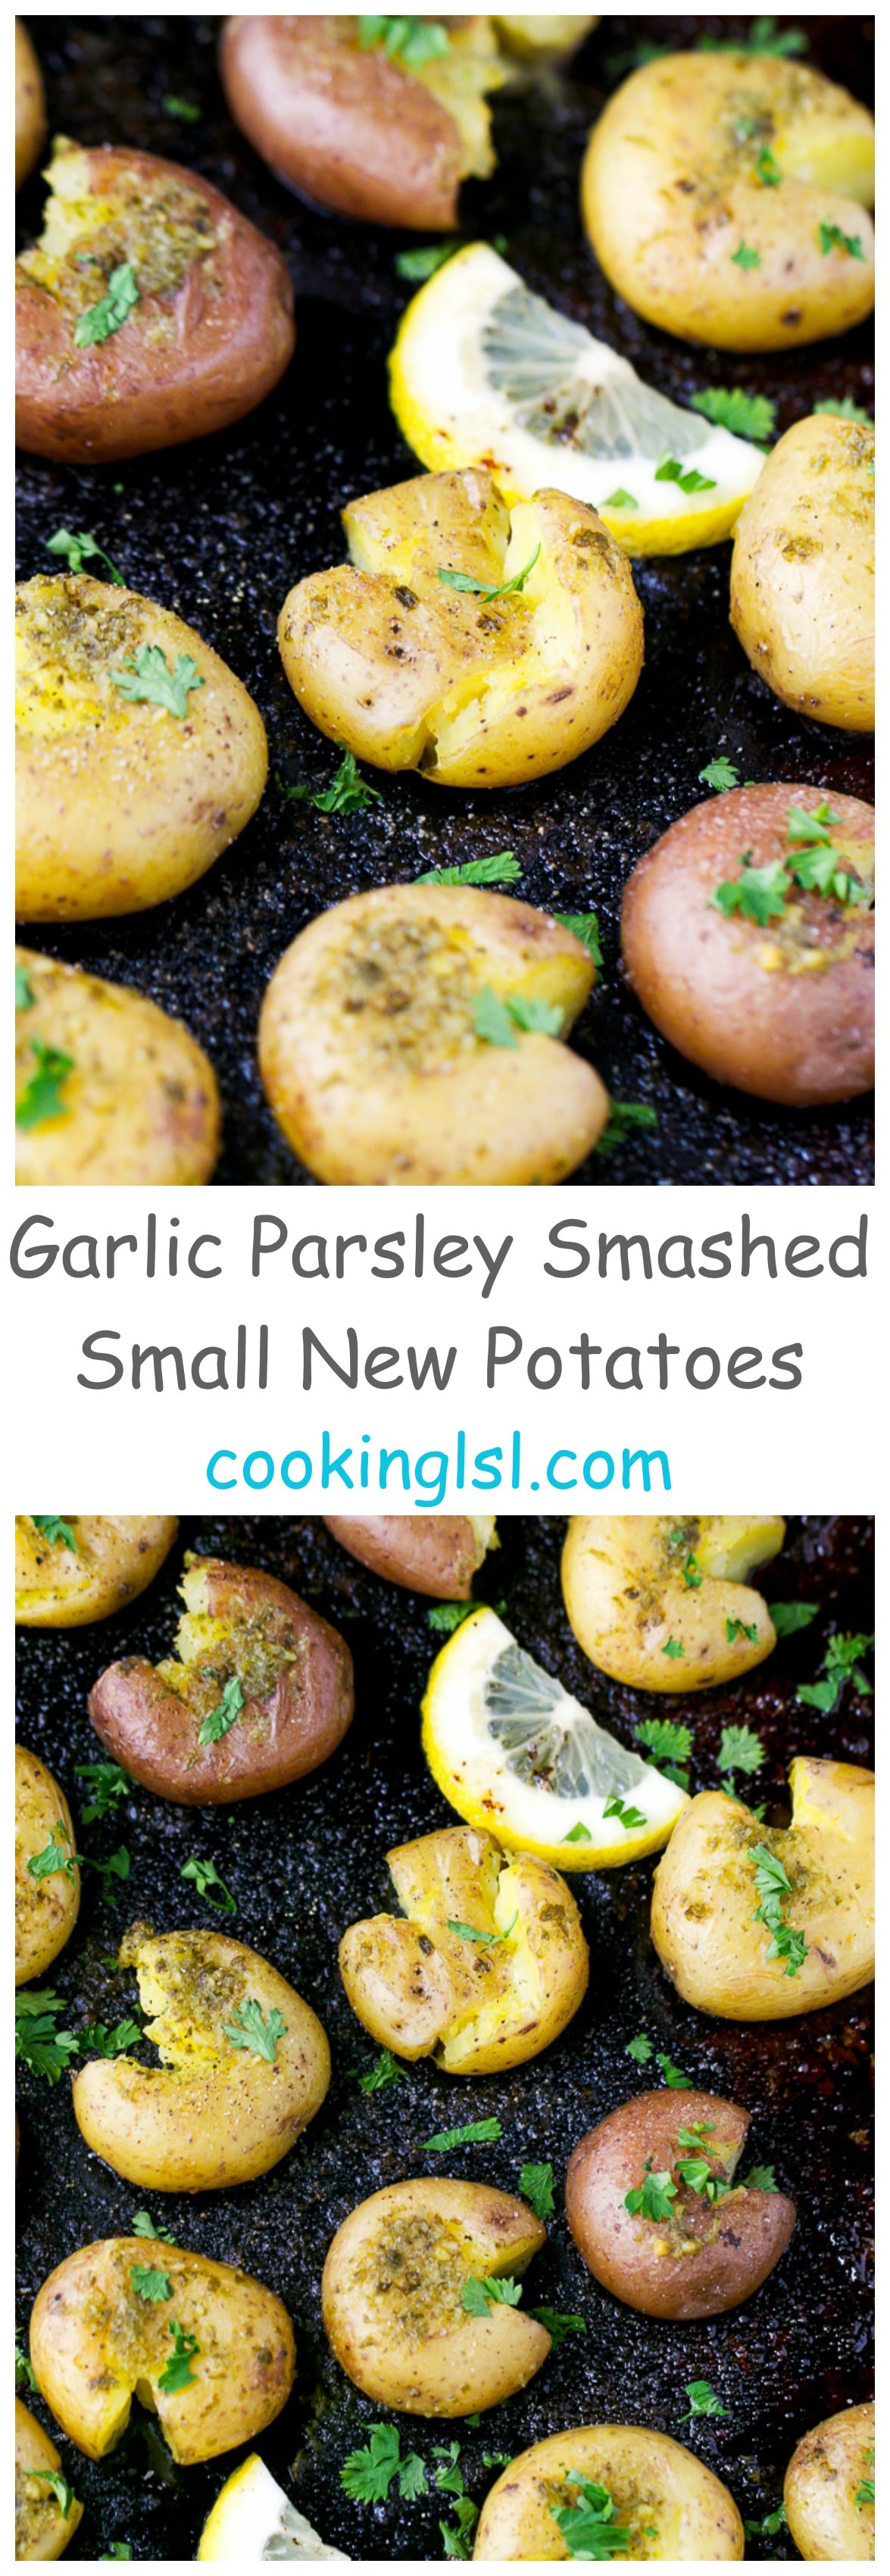 Garlic-Parsley-Smashed-Small-New-Potatoes-Recipe